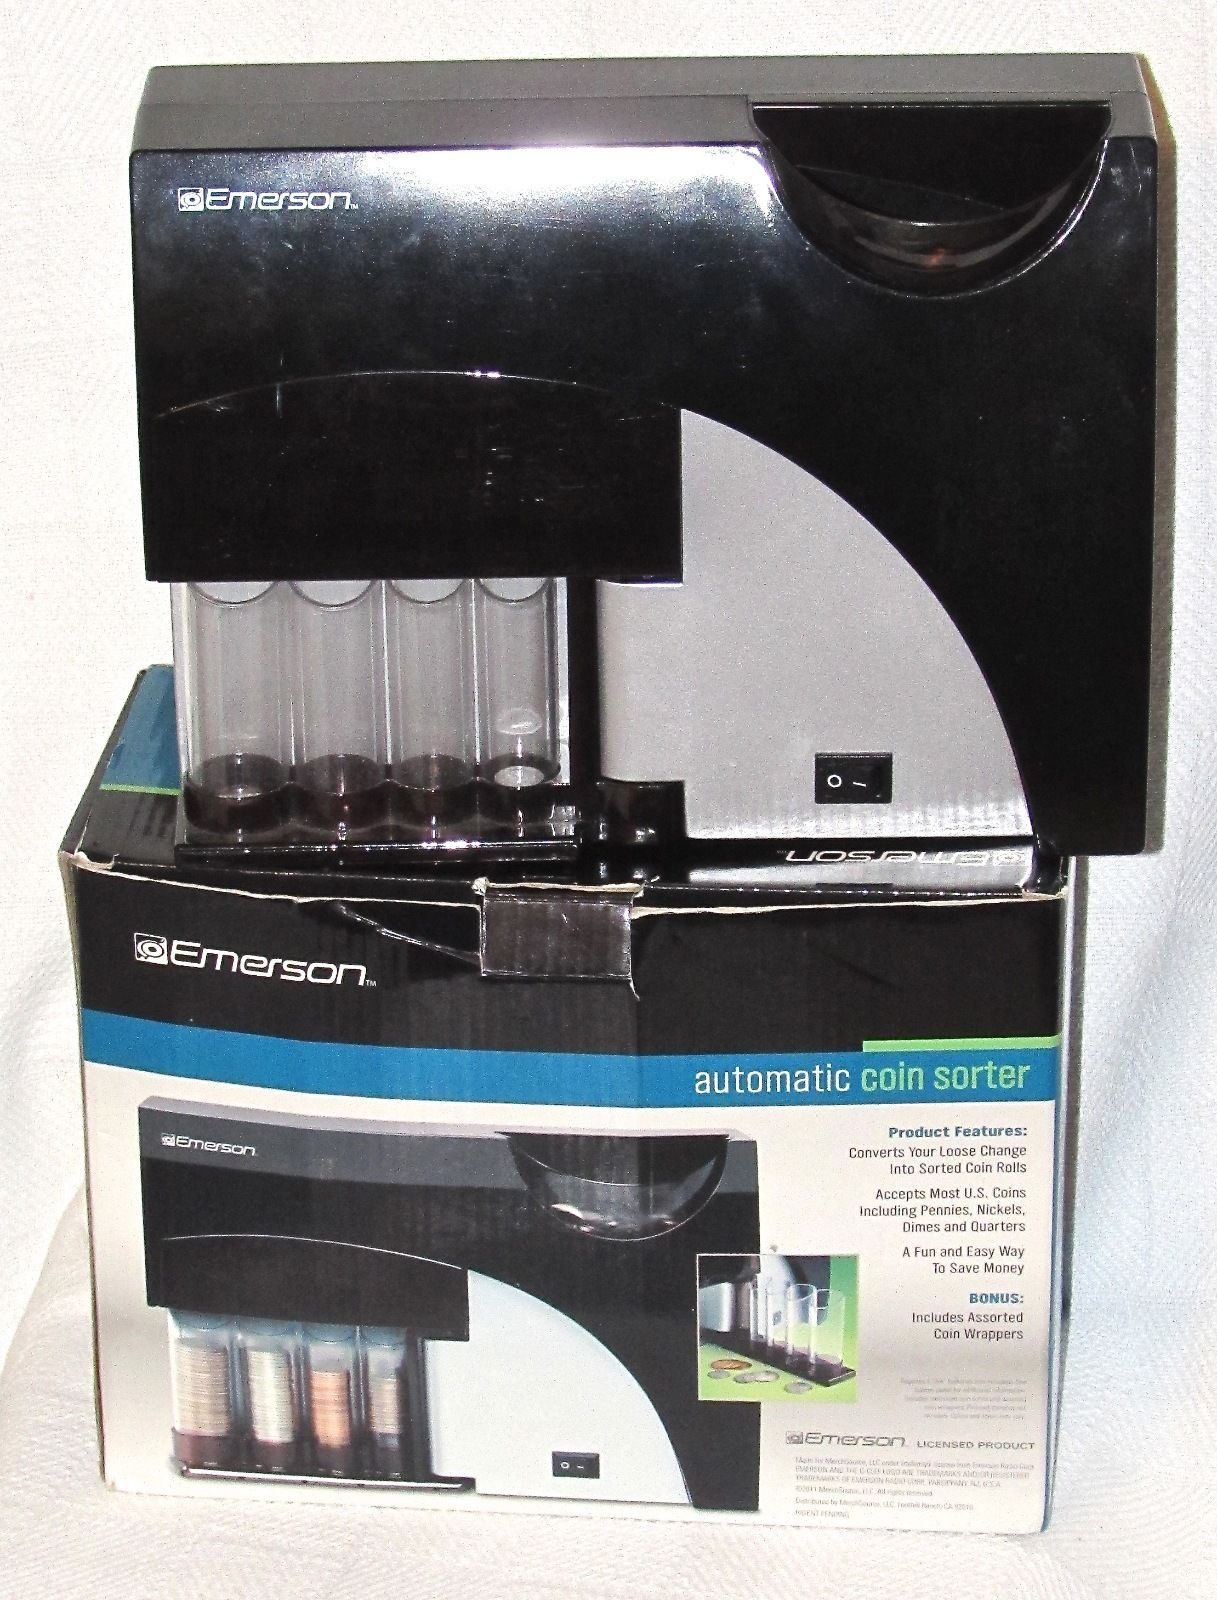 Emerson Automatic Coin Sorter Boxed